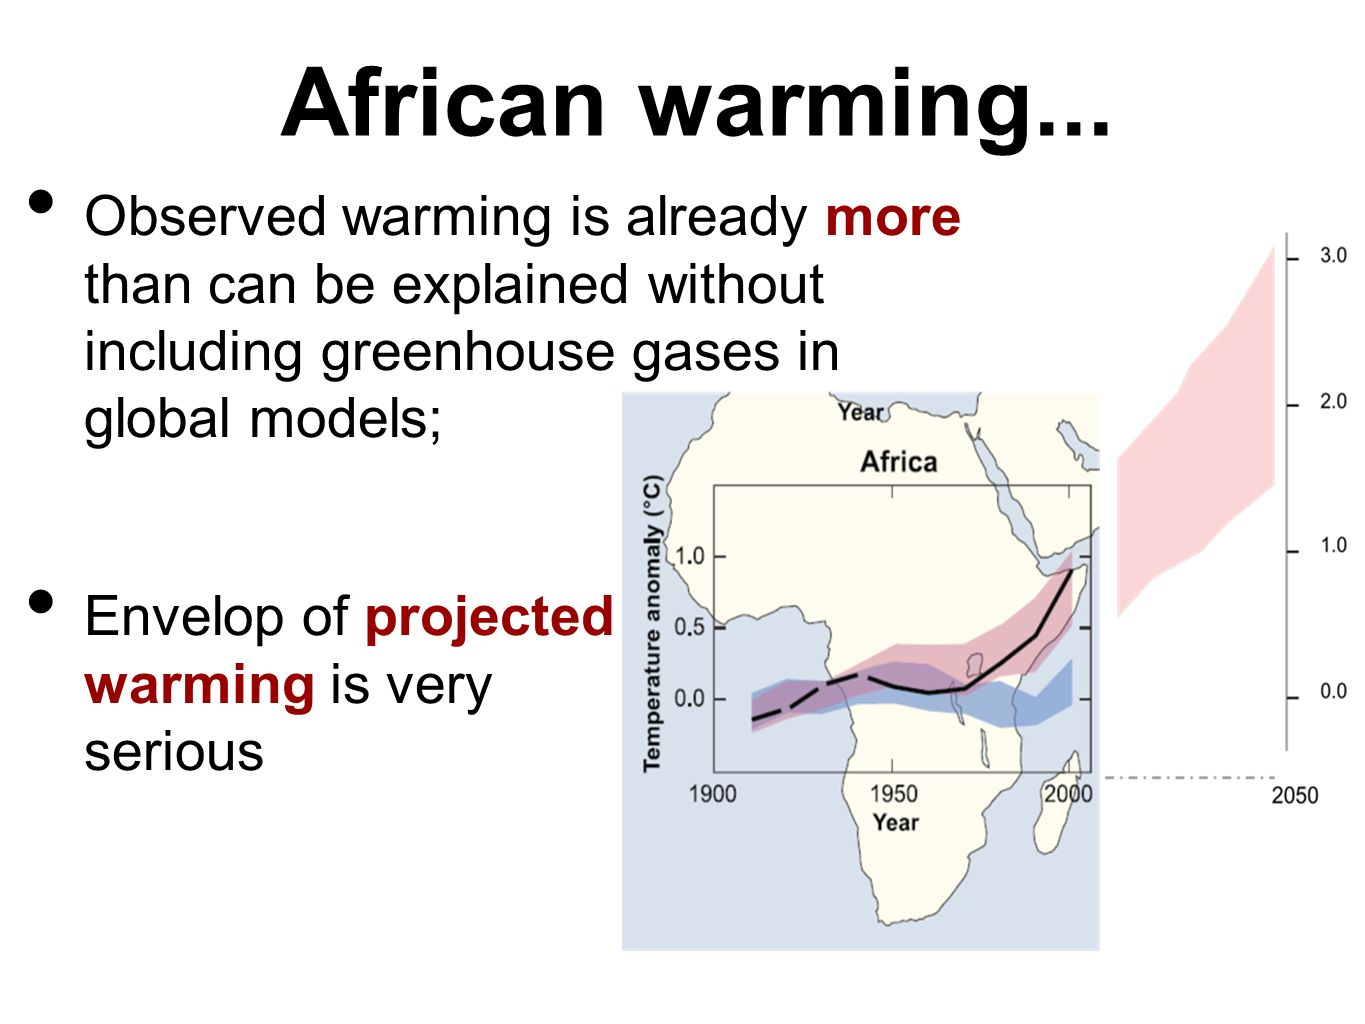 African warming... Observed warming is already more than can be explained without including greenhouse gases in global models; Envelop of projected wa